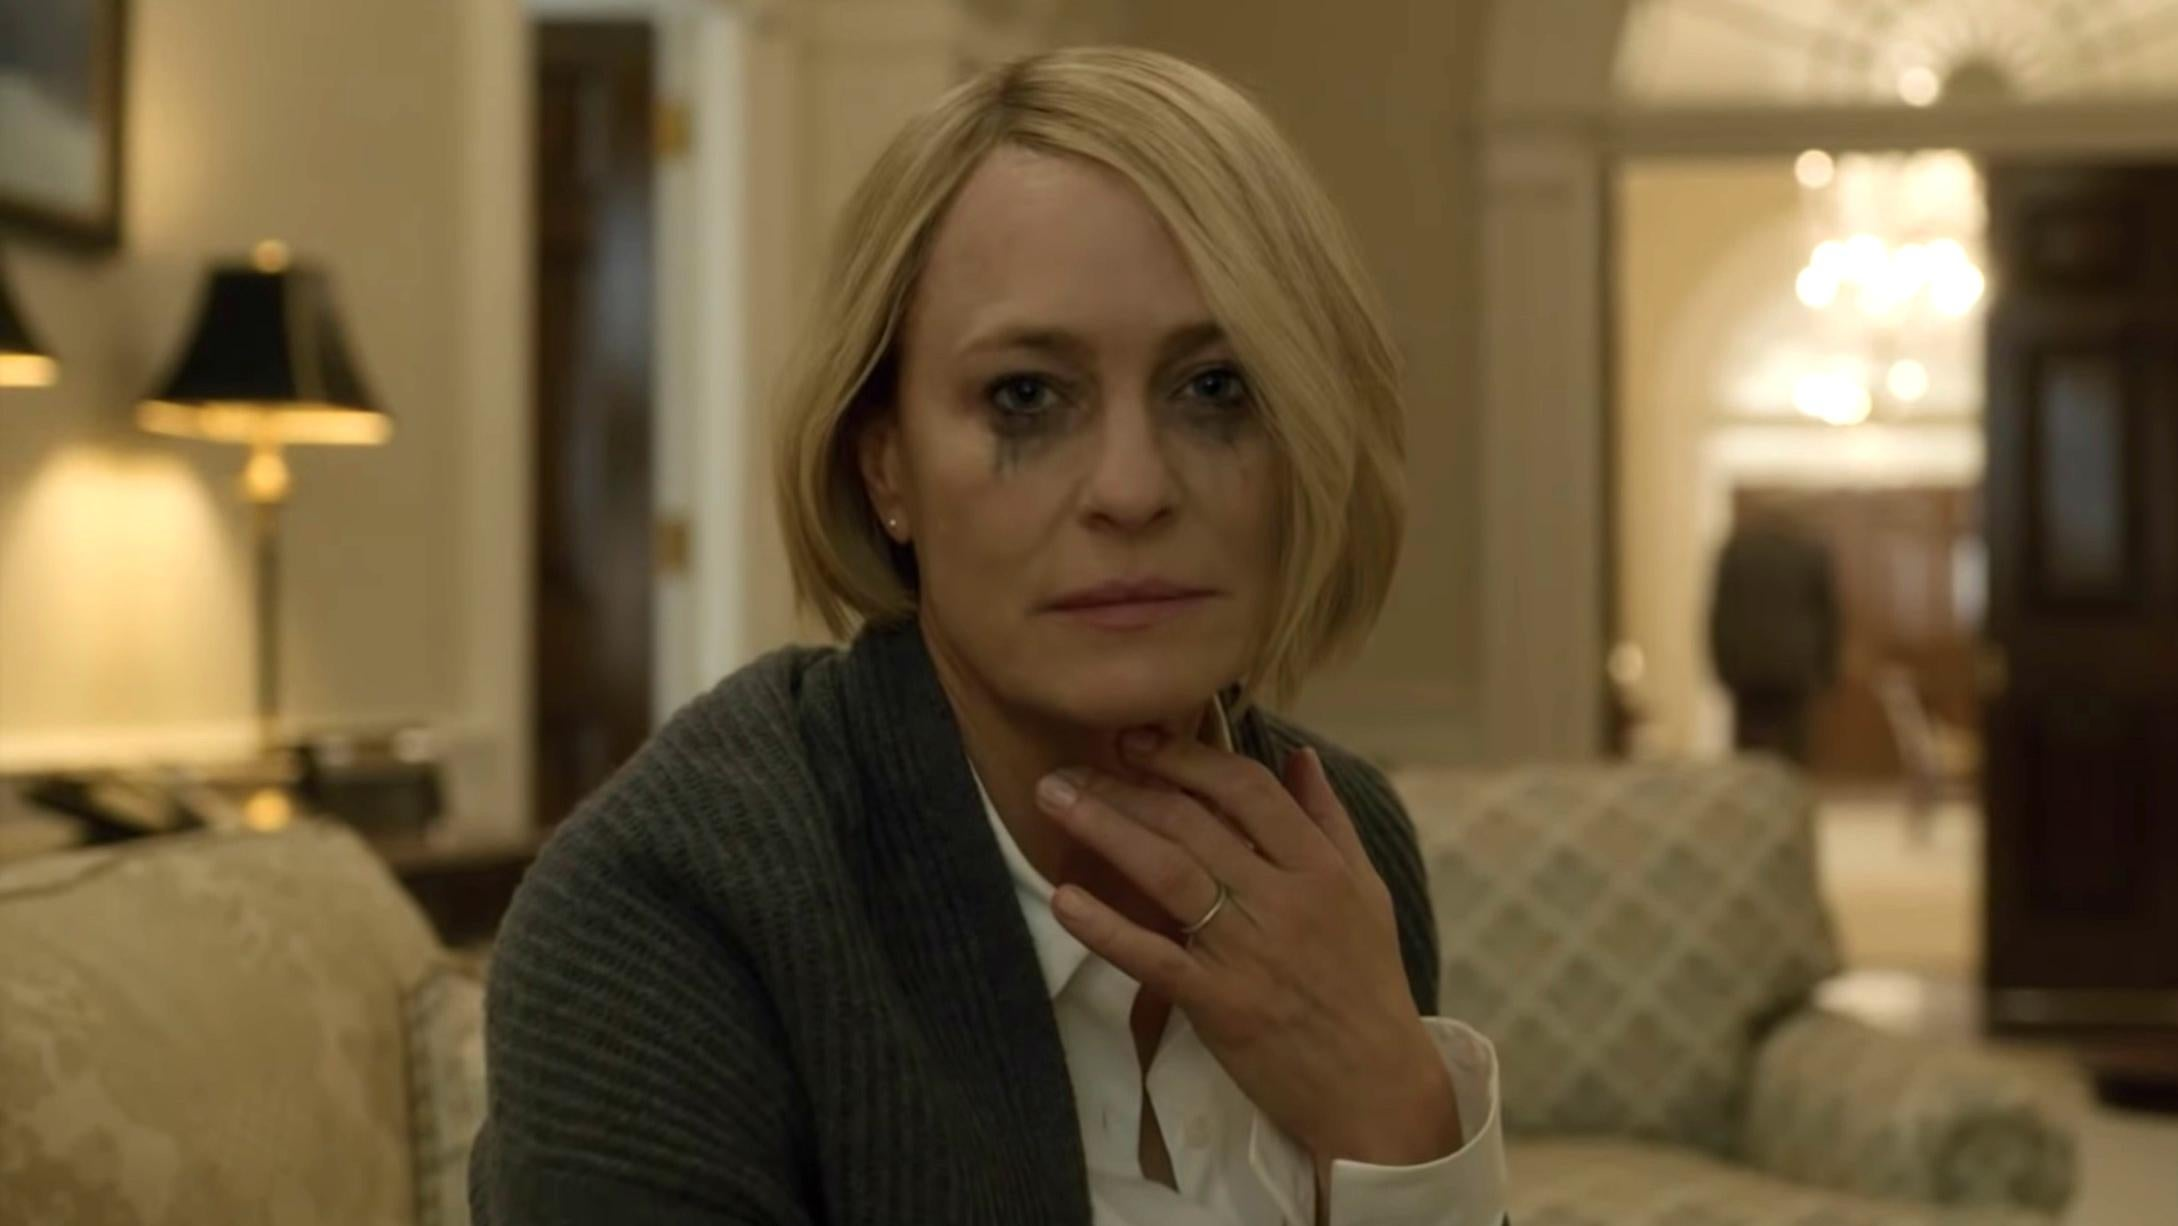 Cameron Richardson Movies And Tv Shows house of cards, season 6, episodes 1-5 review: frank